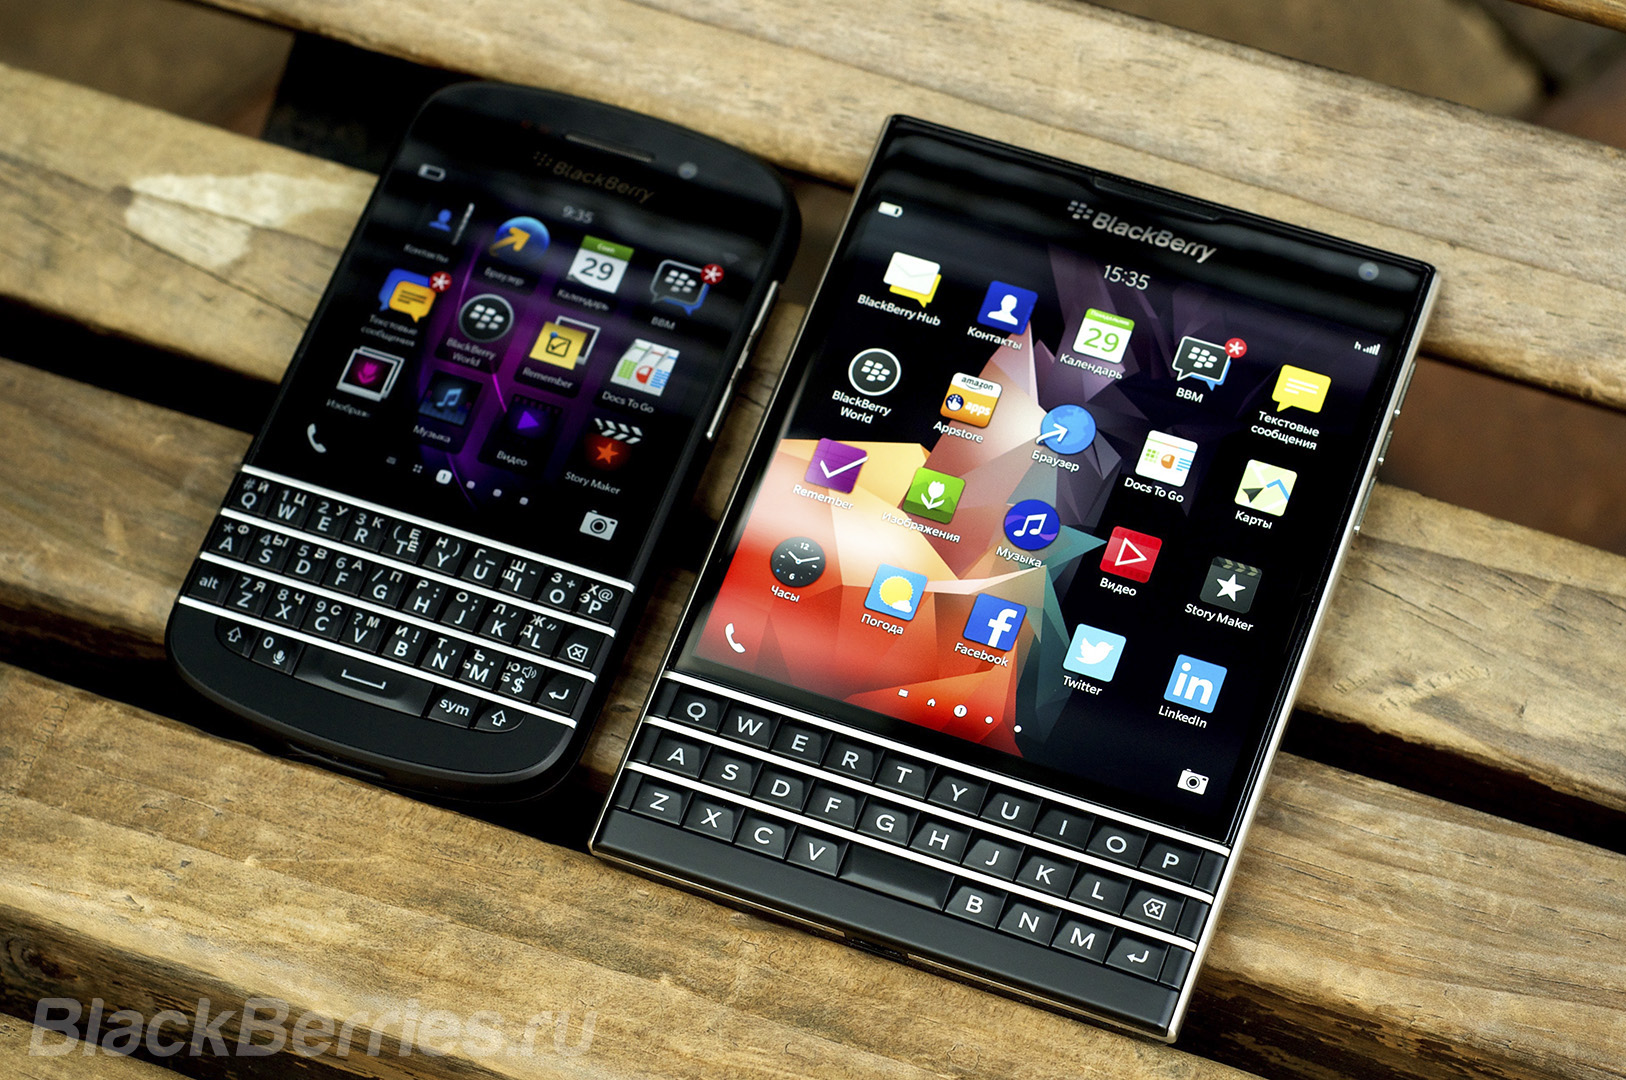 BlackBerry-Passport-Review-2014-15